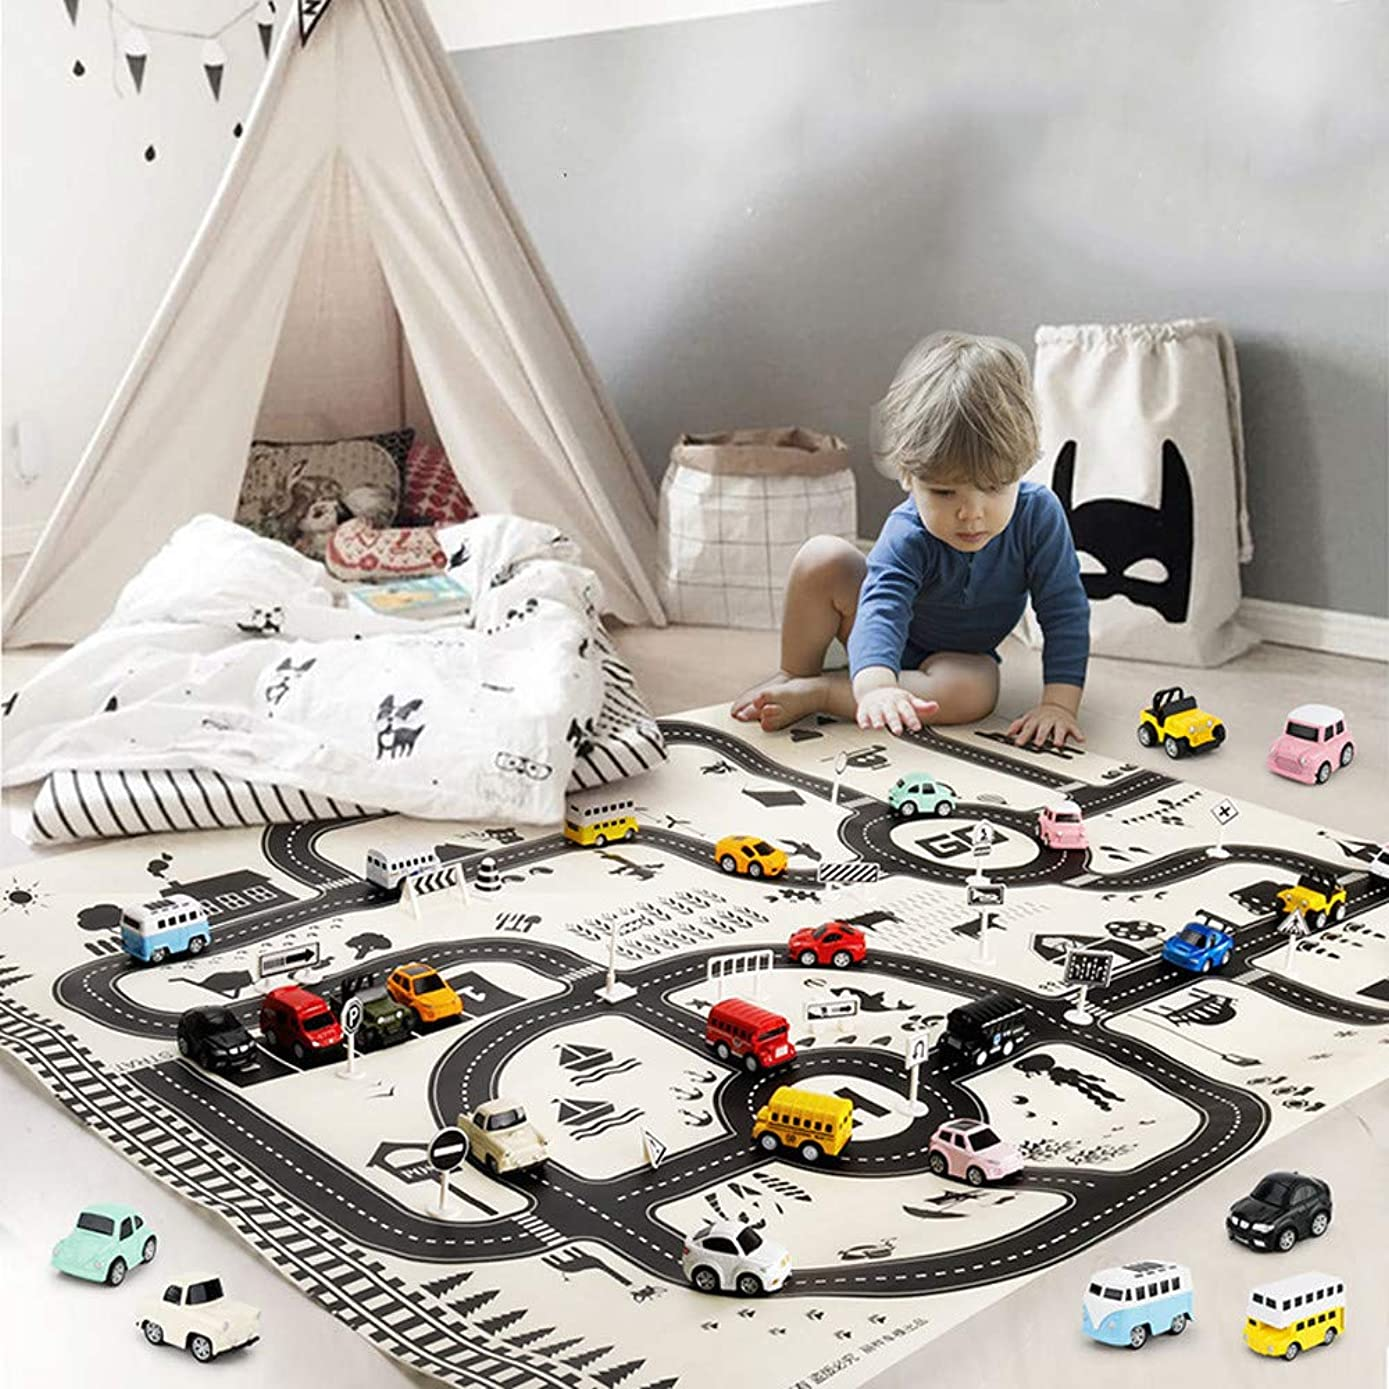 EKIMI Non-Slip Kids Carpet Playmat Rug Great for Cars and Toys, Kids Baby, Children Educational Road Traffic Play Mat for Kidrooms,Playroom and Classroom (Rug)